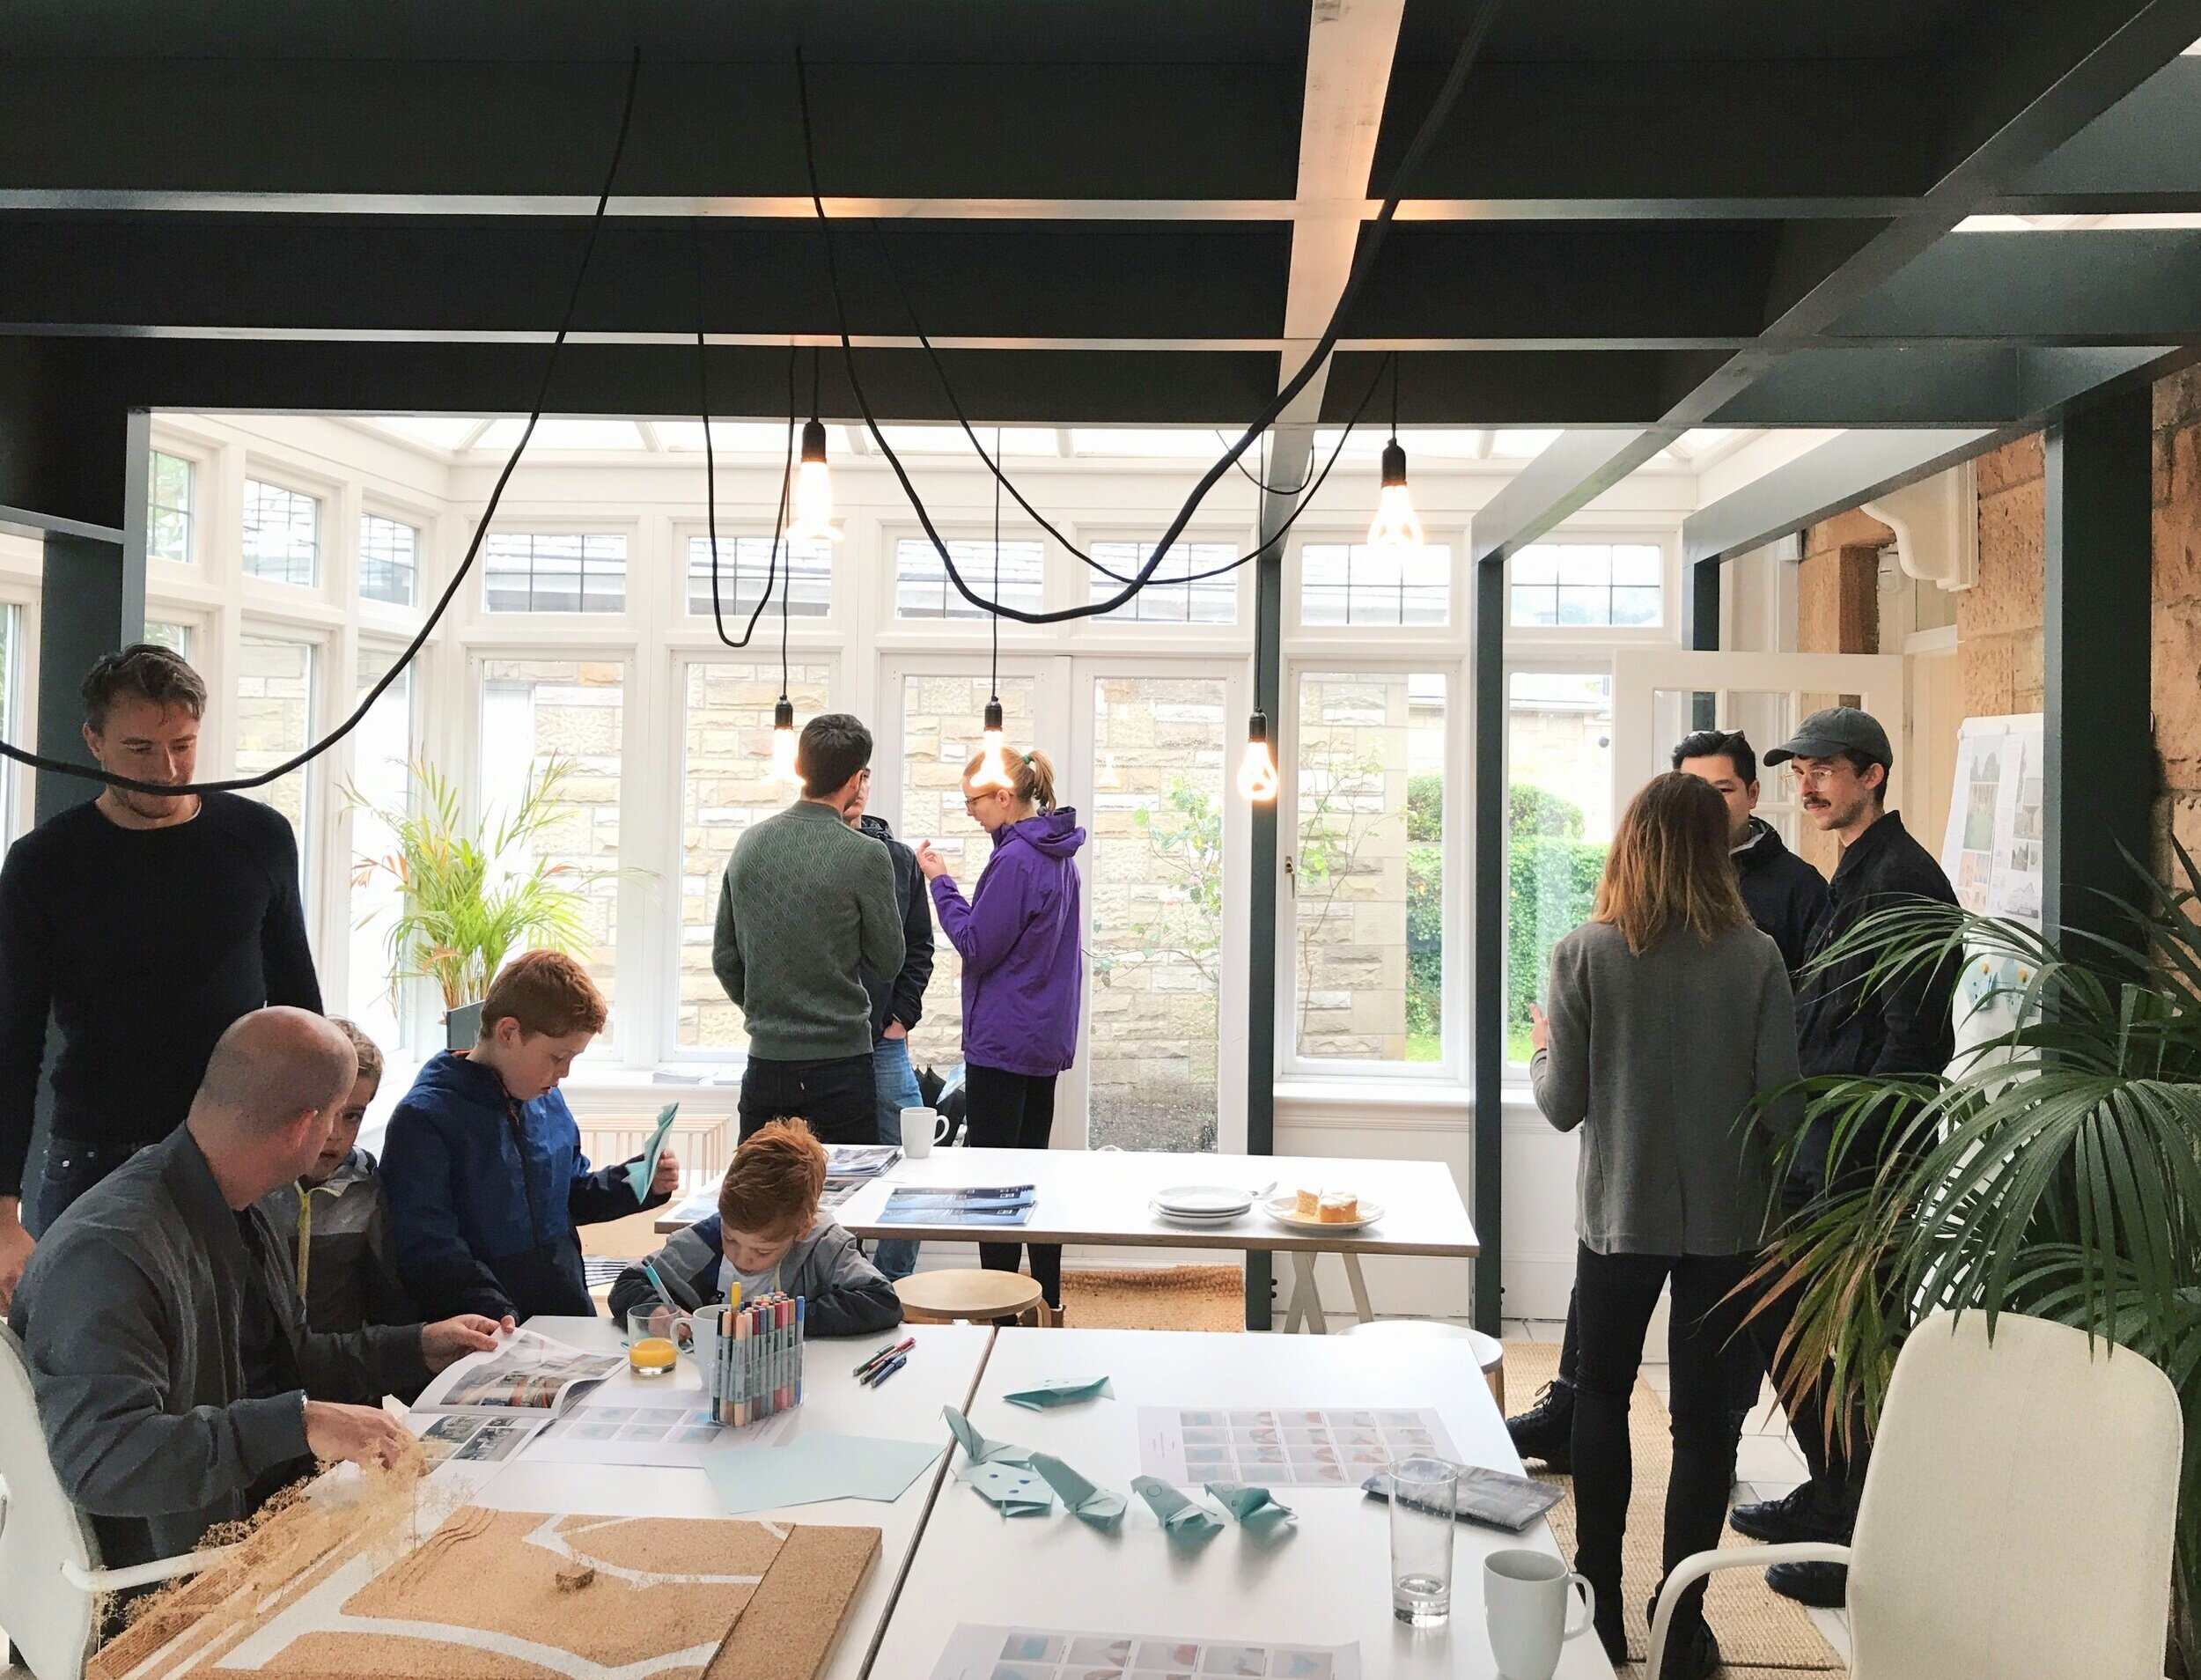 September 2019   A huge thank you to everyone who came by our garden studio for doors open day. We welcomed well over 100 people throughout the day and loved discussing our current work and our newly built Community Classroom.